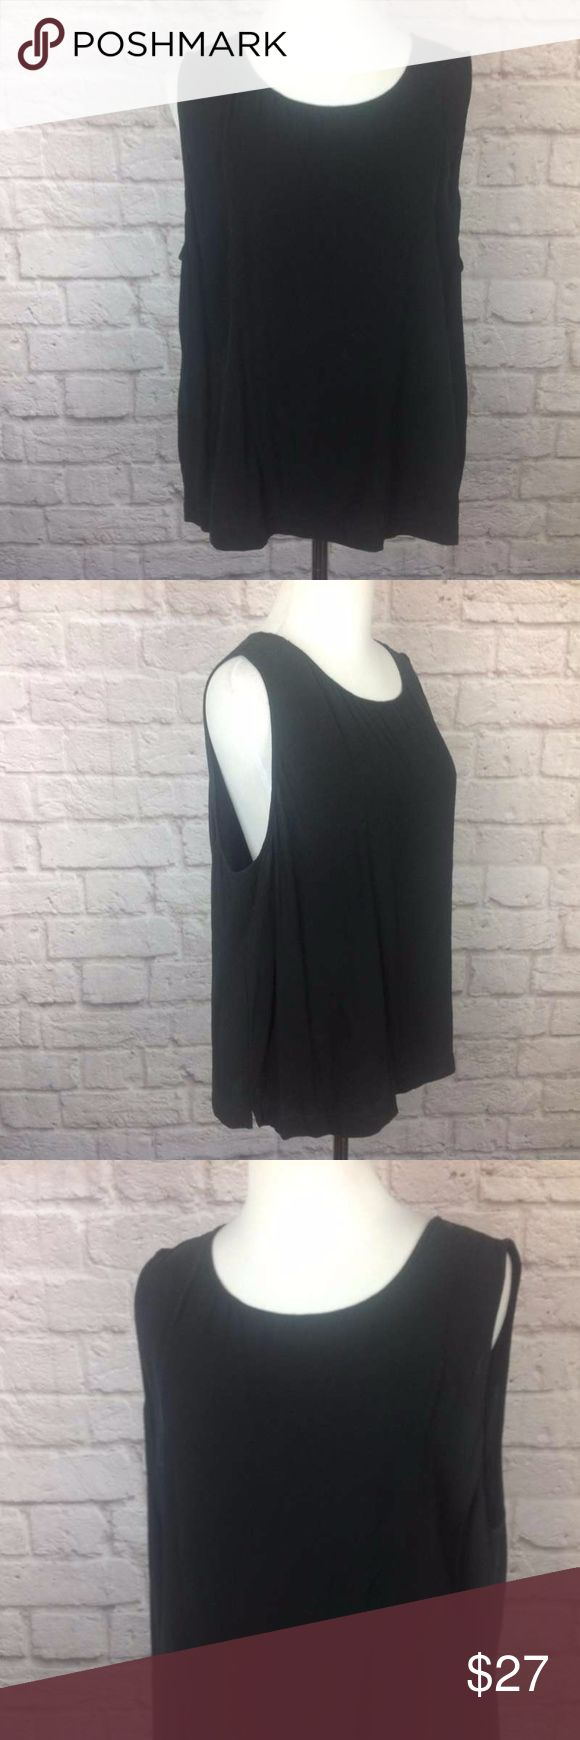 Eileen Fisher Top XL Tank 100% Silk Black Cami Great condition; Eileen Fisher Top XL Tank 100% Silk Black Cami Sleeveless; 22.5 inch length ; 23 inch across bust Eileen Fisher Tops Blouses